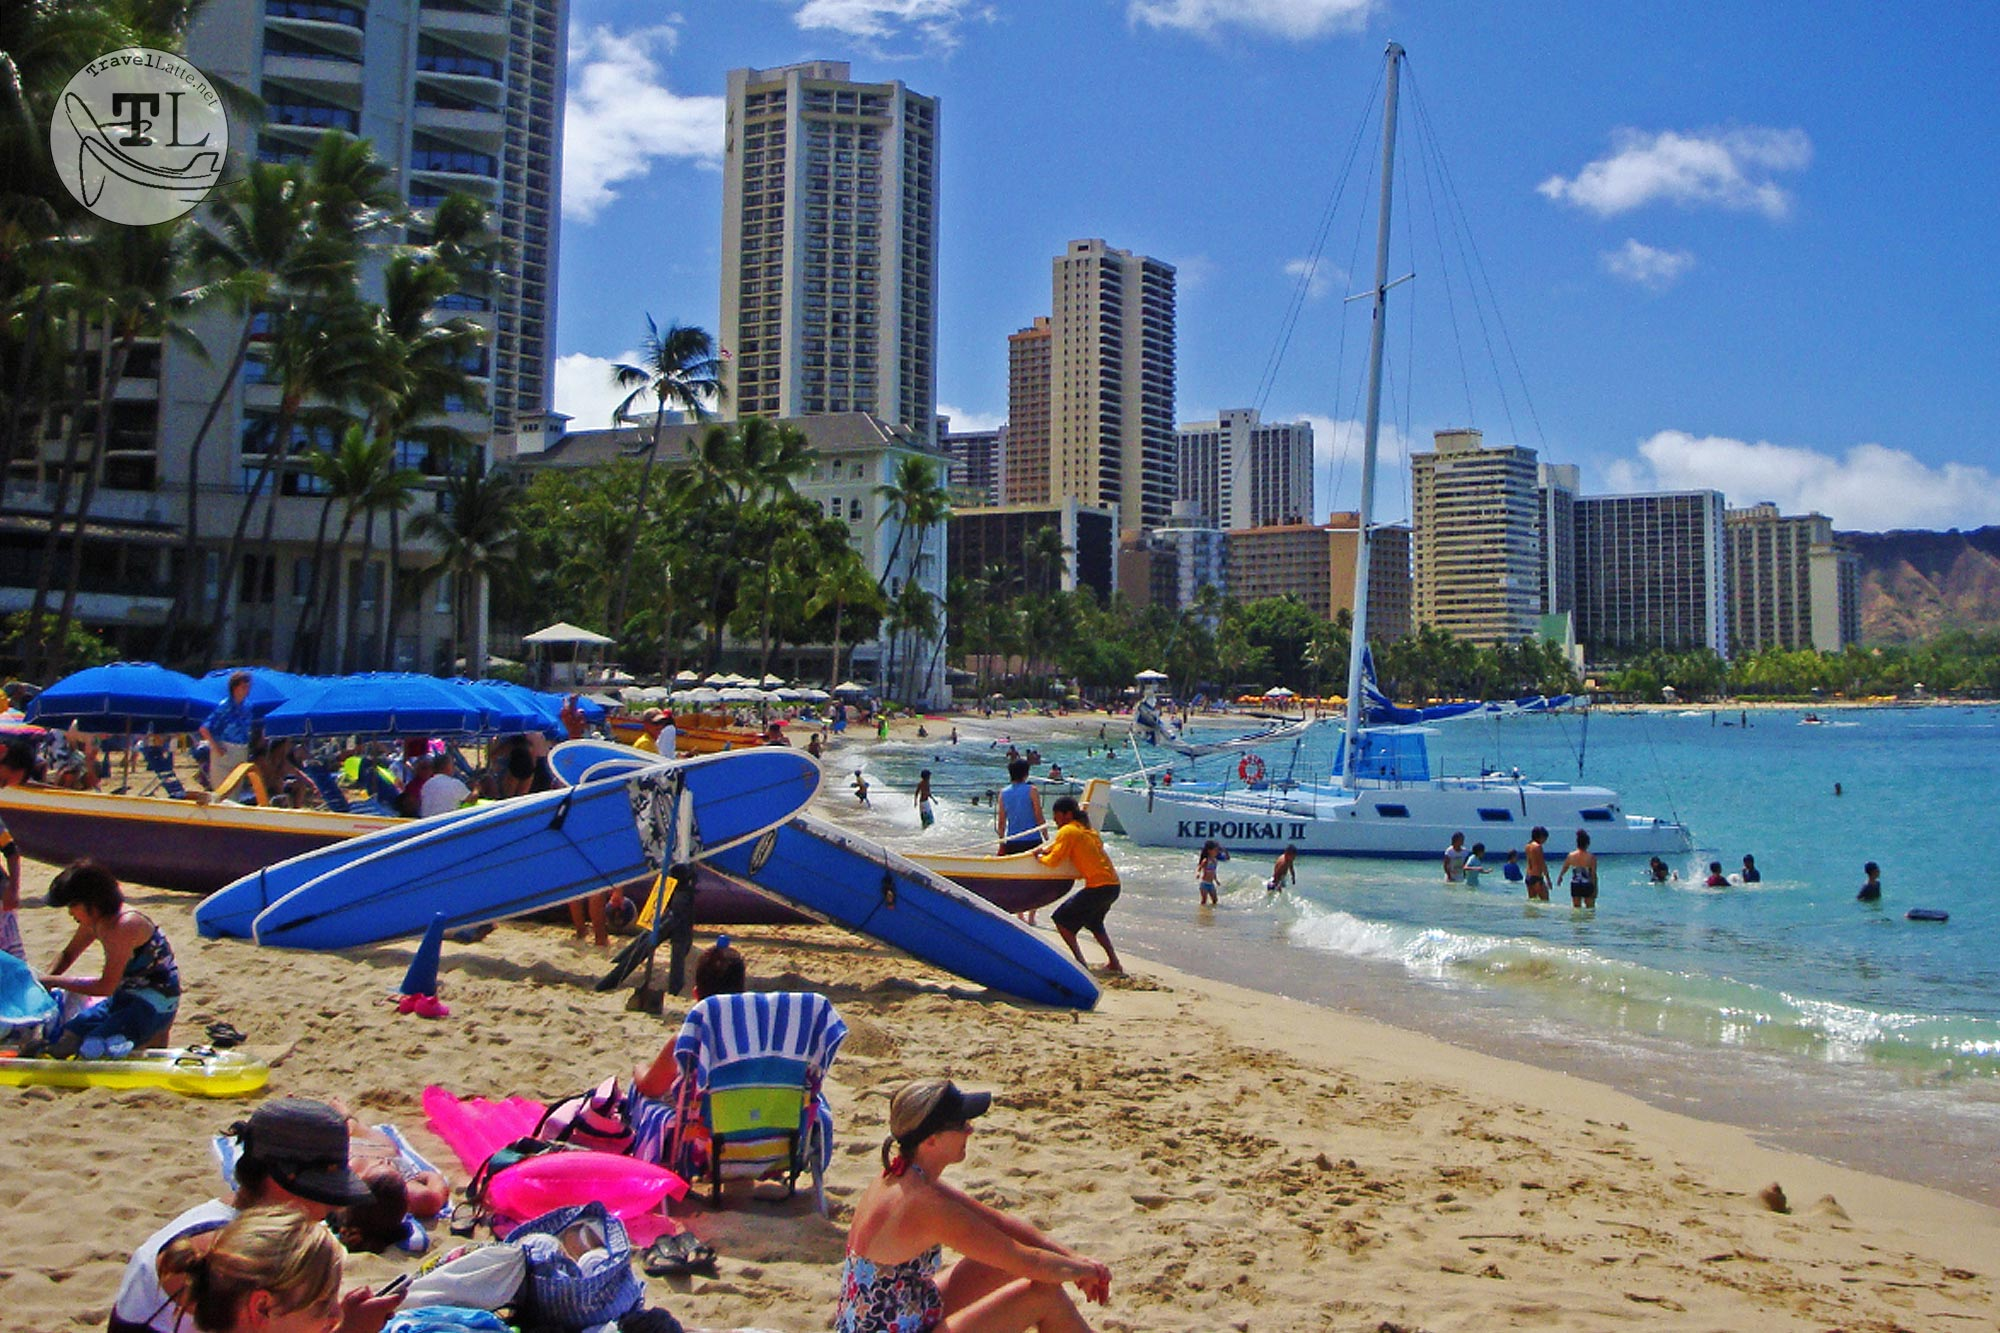 The Best Places To Travel By Month - February for sunbathing to surfing, Waikiki Beach is the epitome of fun in the sun!